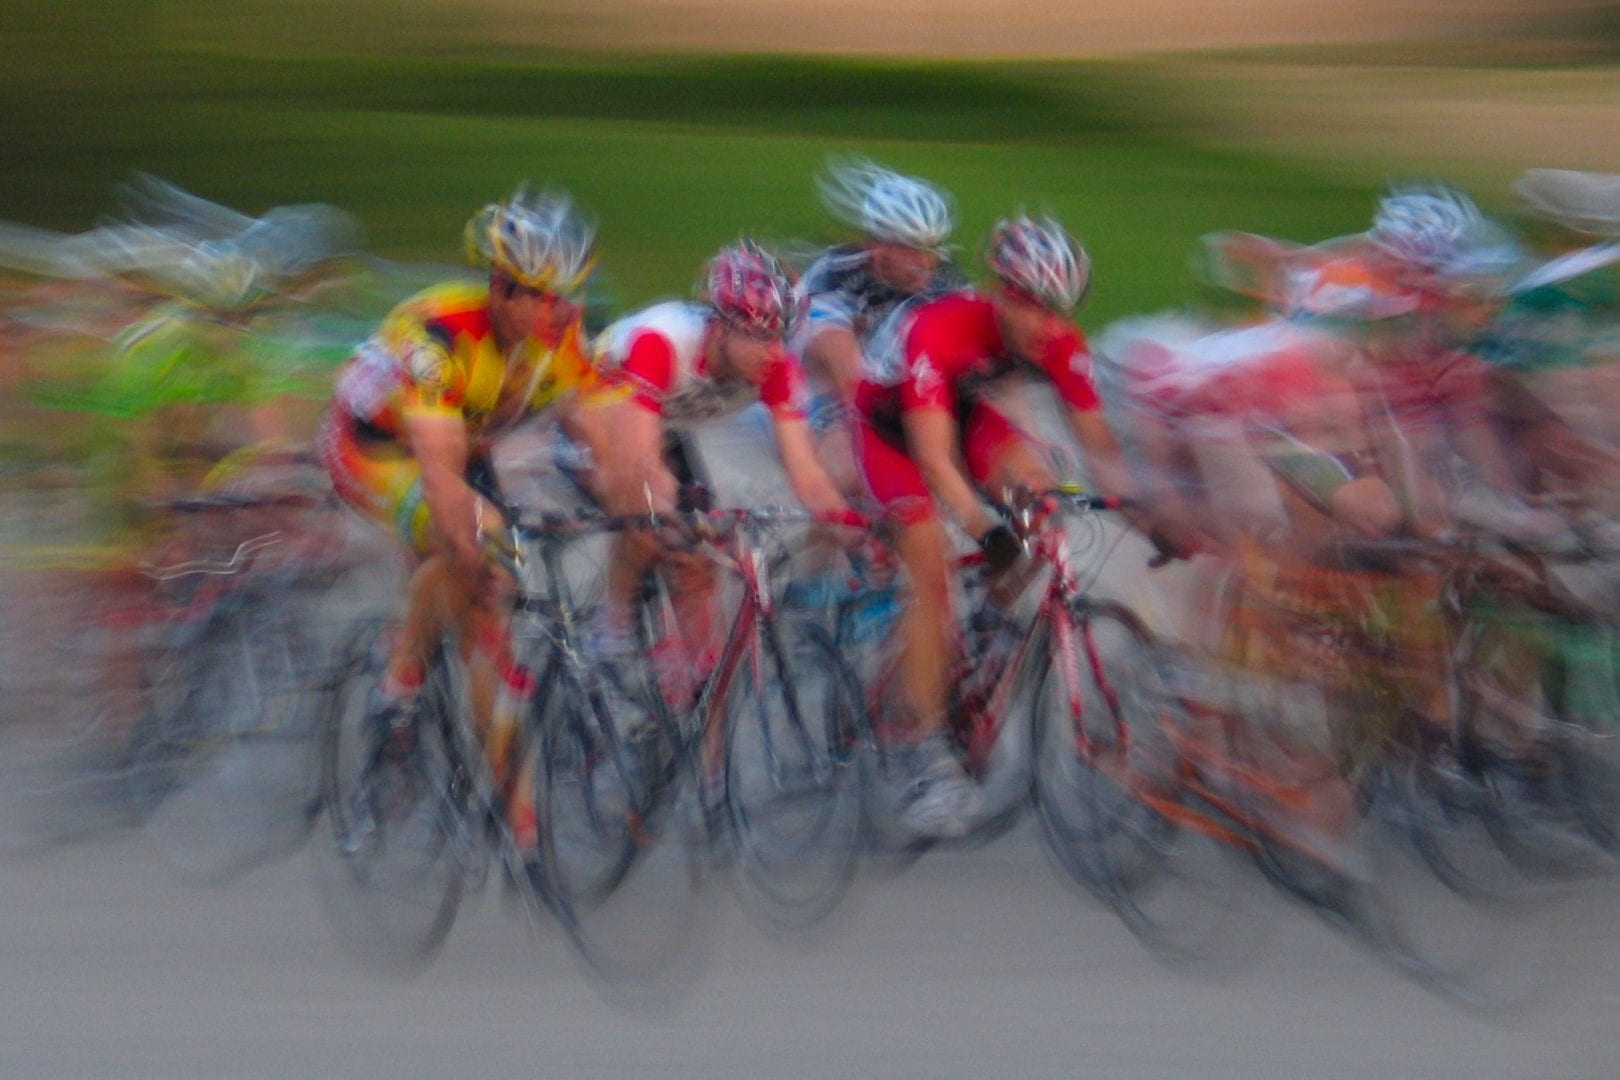 Cyclists in a blurry image